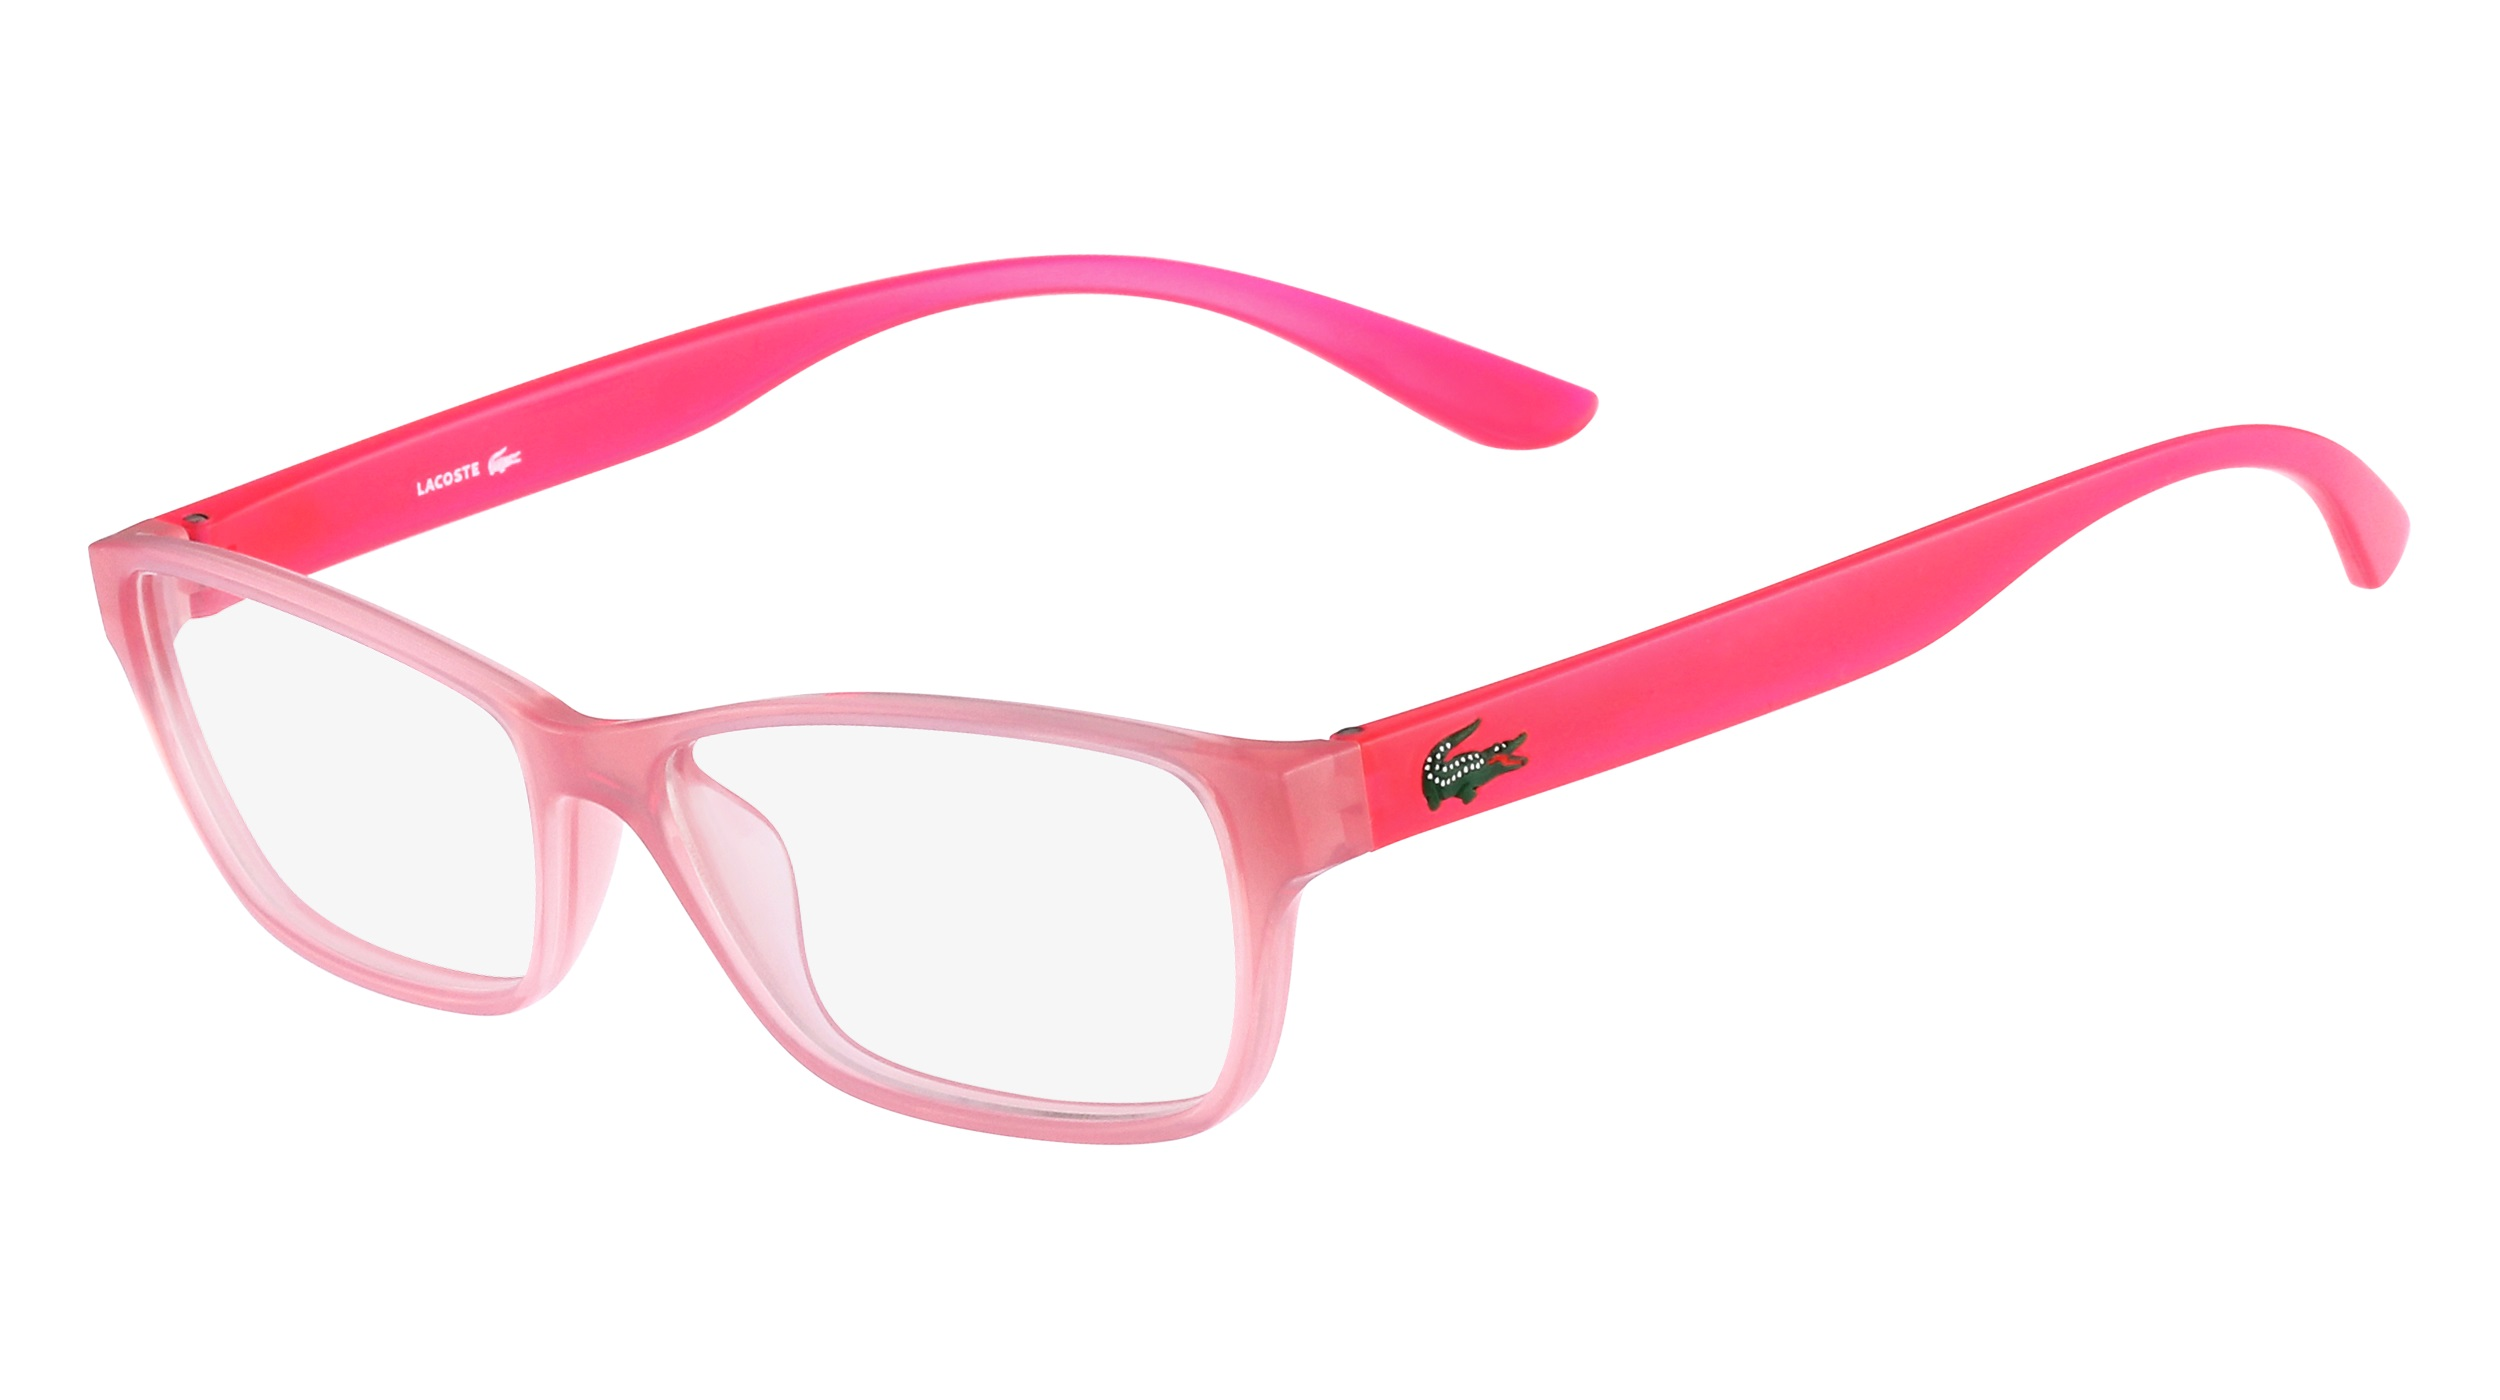 f3240cdf8e1c Eyewear for Kids - Lacoste - Optiwow